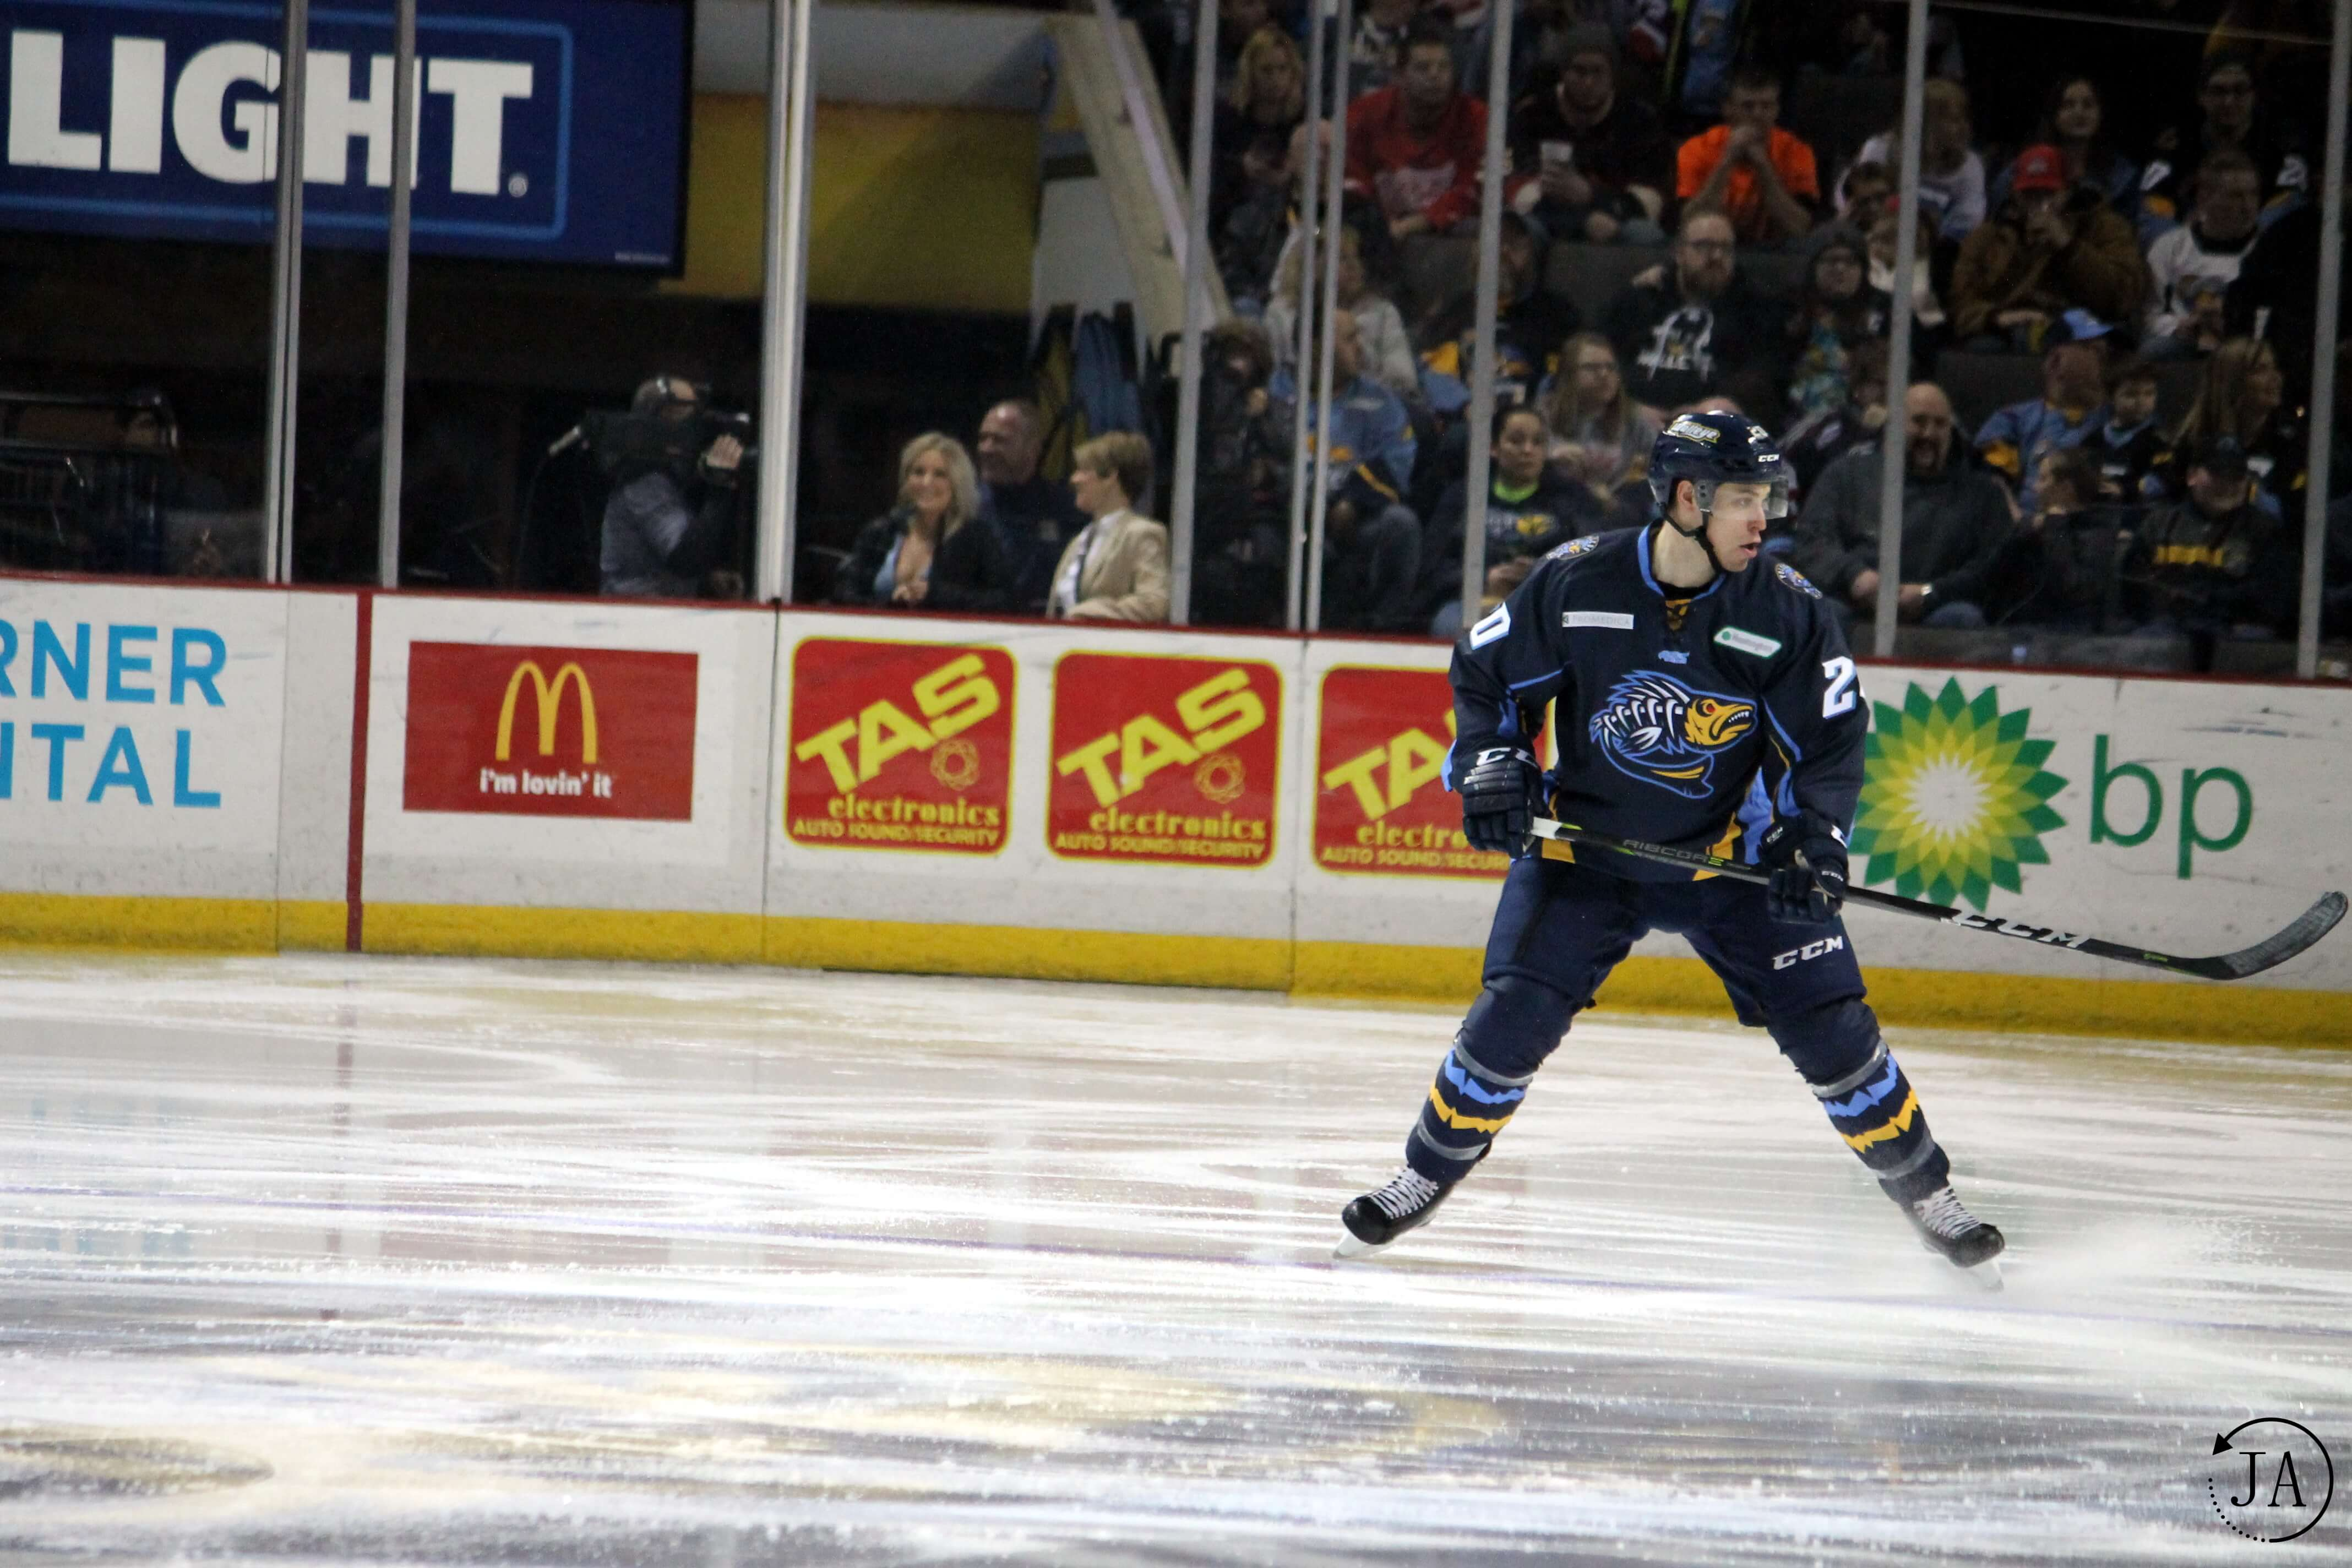 Mike Borkowski | Calder Cup Champion Looking for ECHL Champ Title